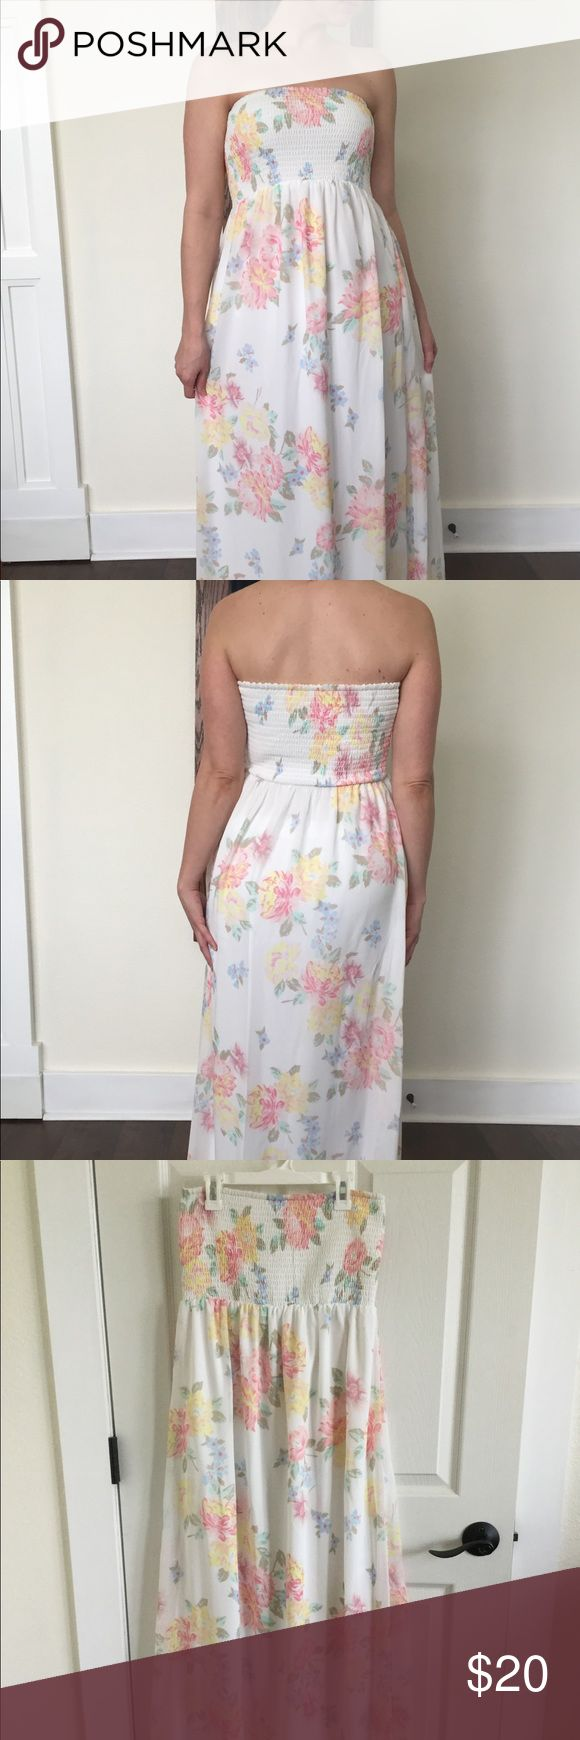 Old Navy Floral Maxi Dress Lovely Old Navy Floral Maxi. Can even be used as a maternity dress. Worn twice and in excellent condition. Hits just above the floor on me when I am barefoot and I am 5'4. Very comfortable, perfect for spring and summer! Non-smoking and pet free home. Old Navy Dresses Maxi